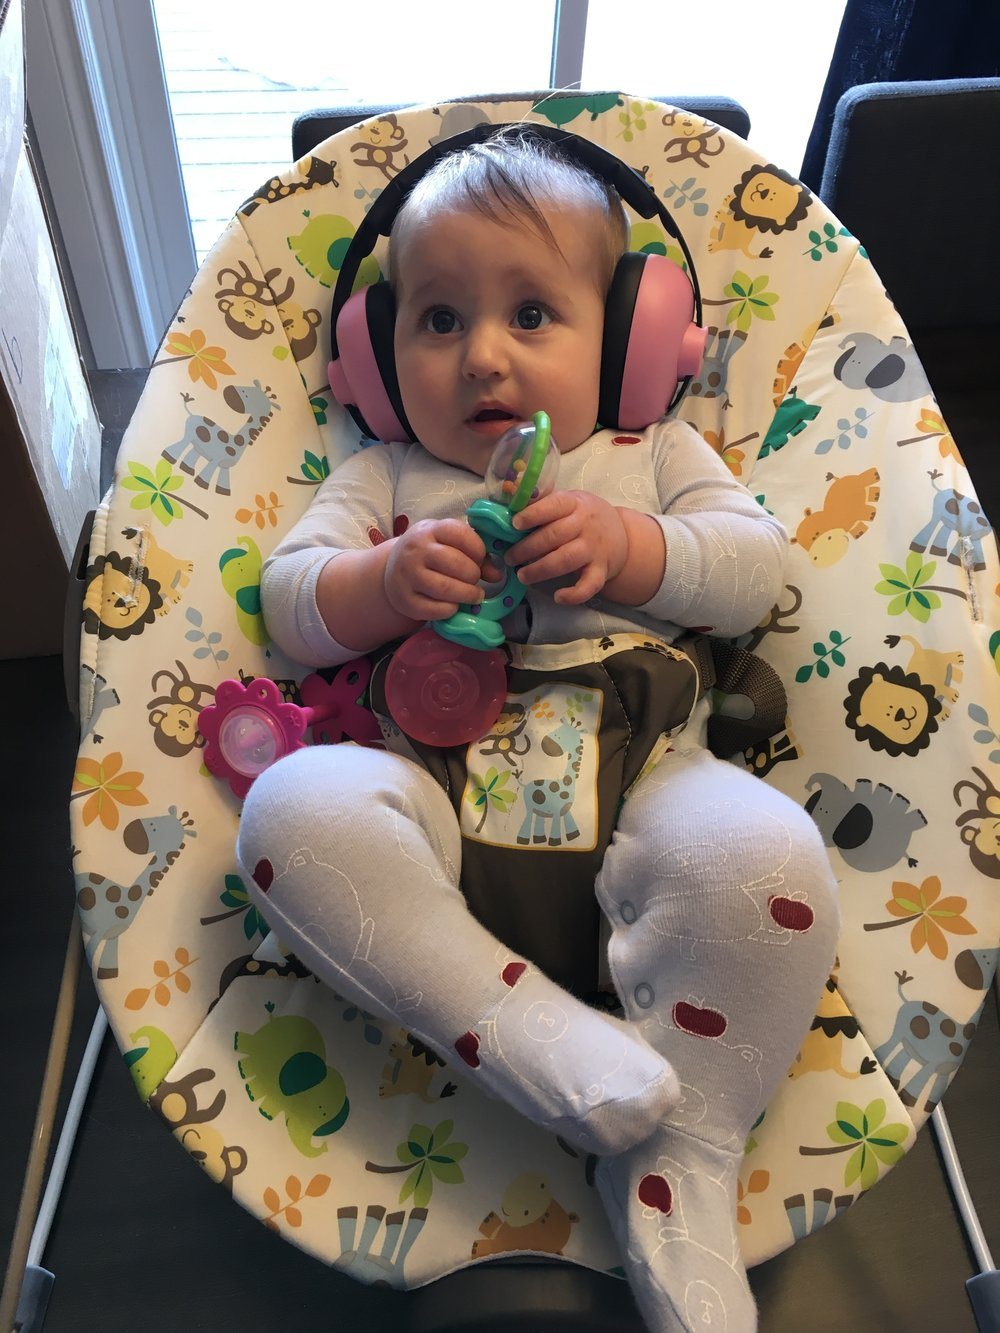 Baby Bird trying out her ear protection for the flight